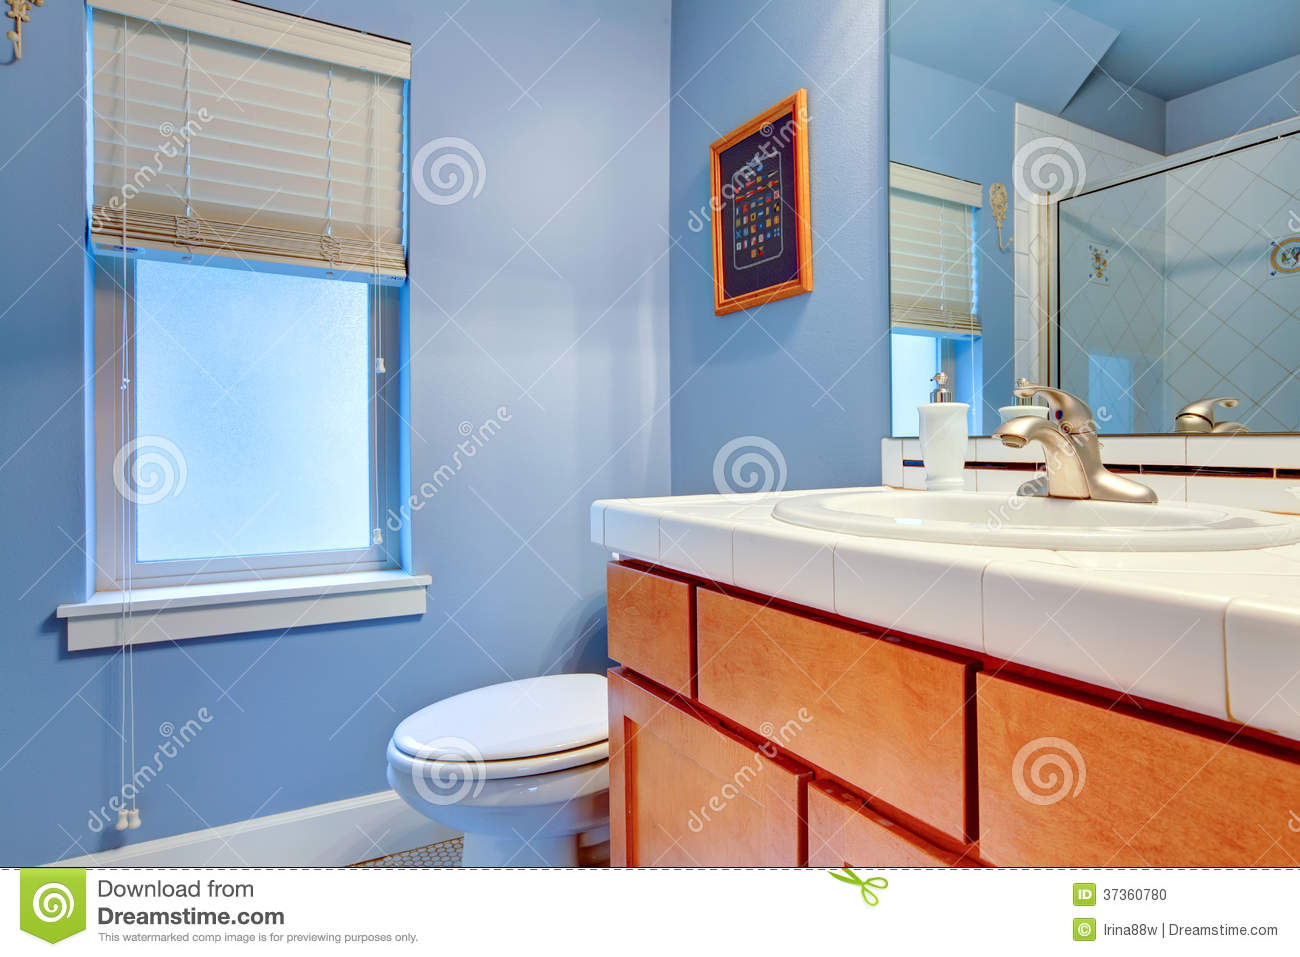 Cozy light blue bathroom